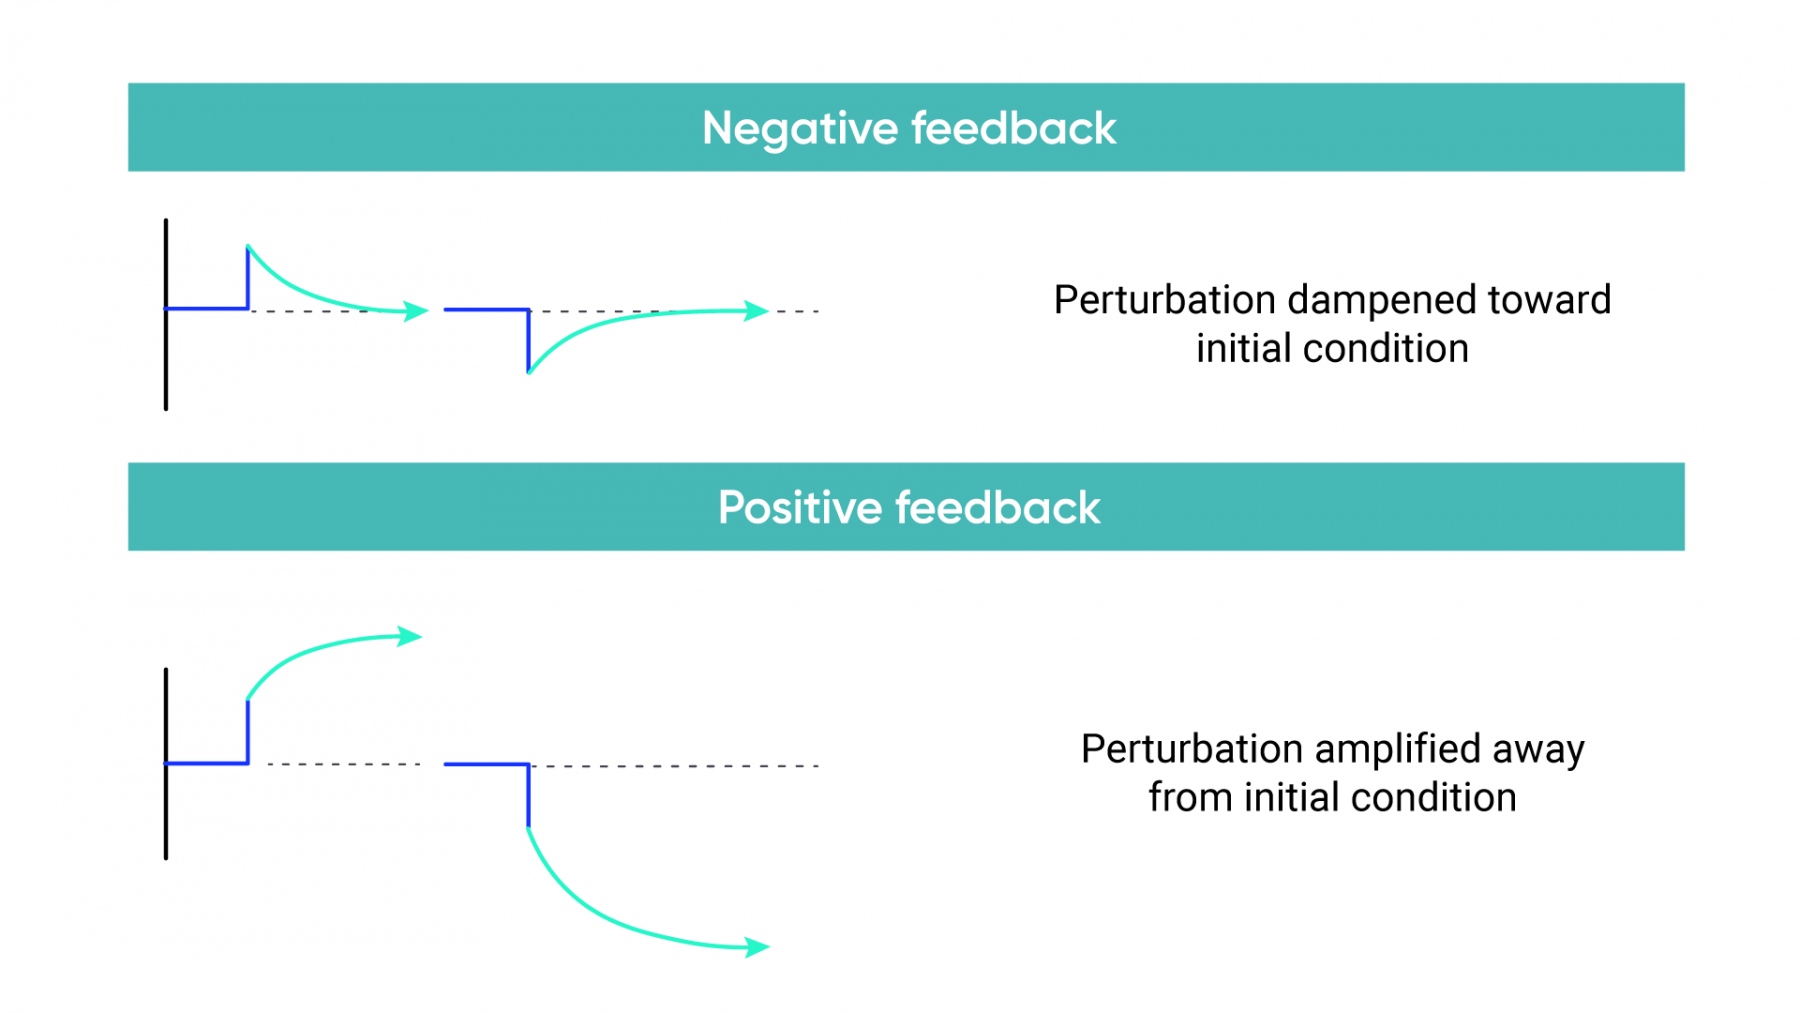 Illustration of negative feedback loop shows perturbation damped toward the initial condition. Illustration of positive feedback loop shows perturbation amplified away from the initial condition.